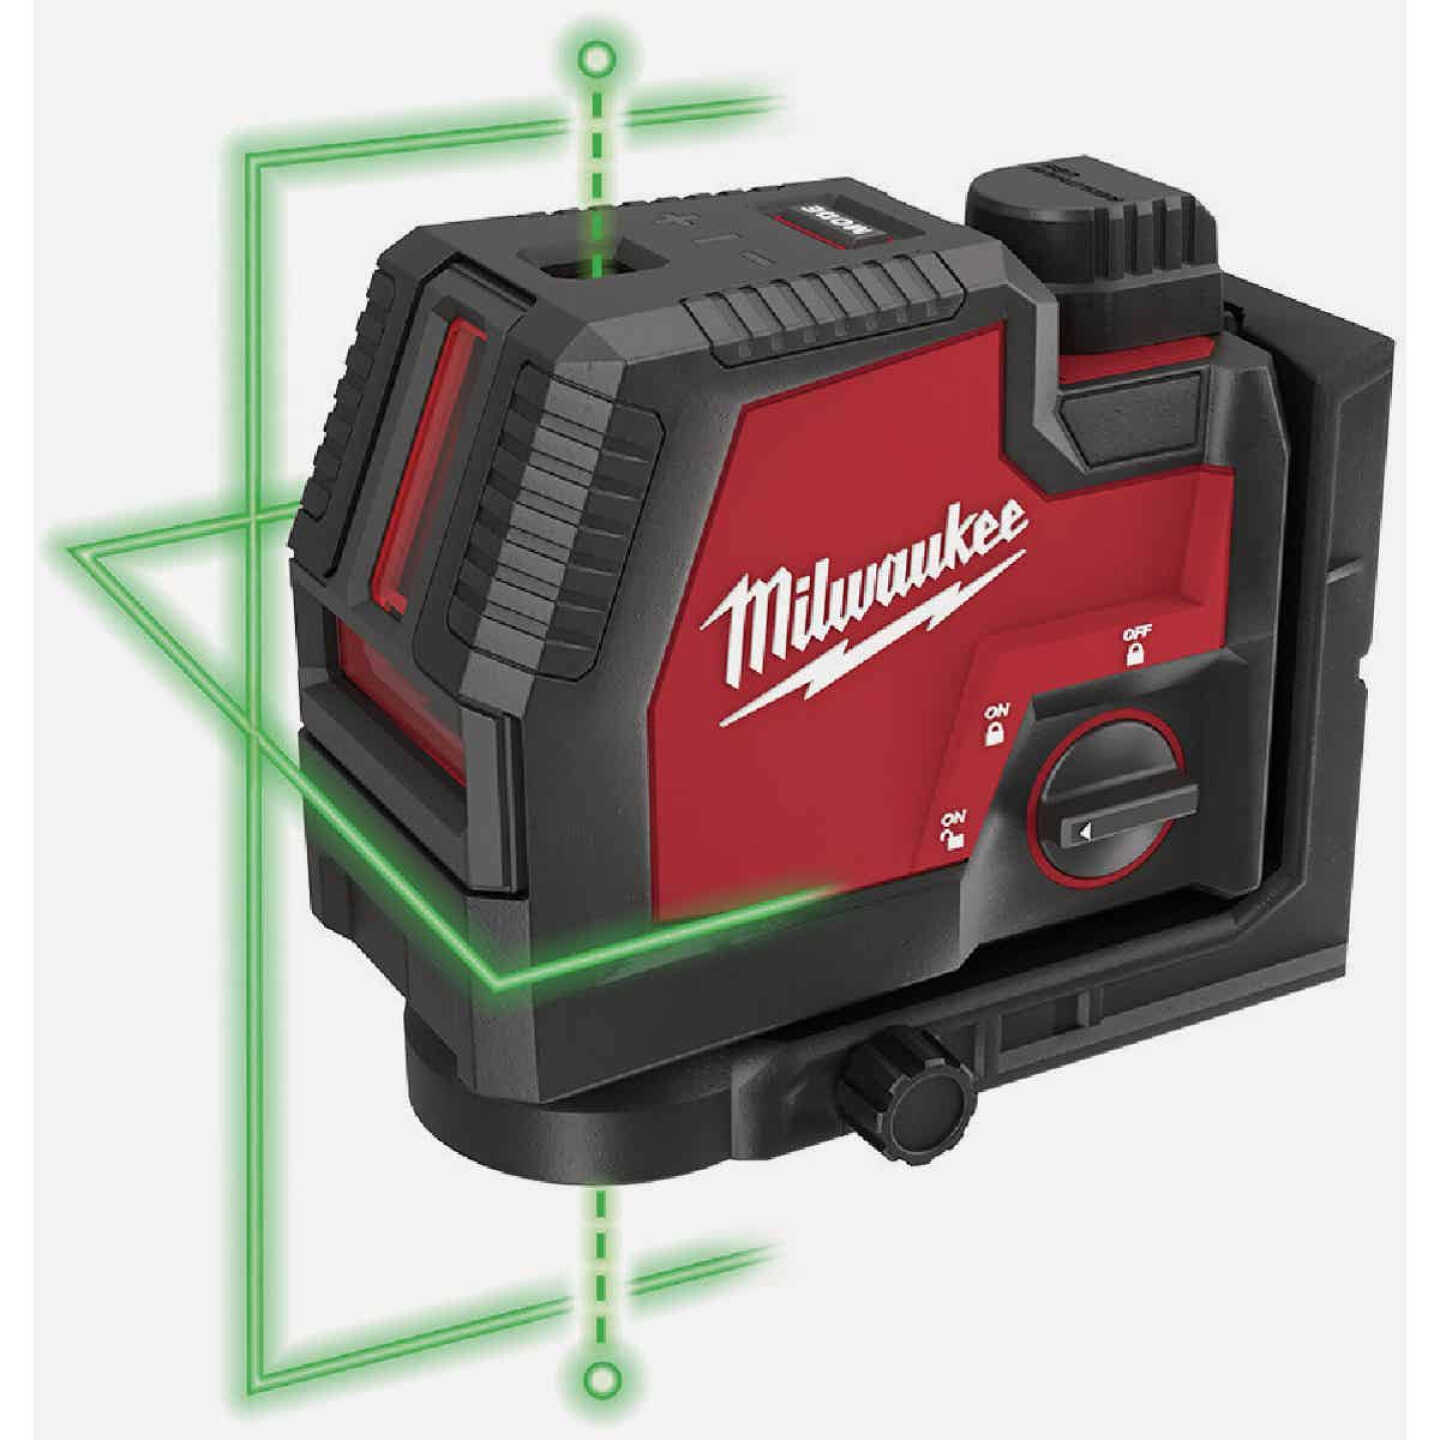 Milwaukee USB Rechargeable Green Cross Line & Plumb Points Laser Image 2